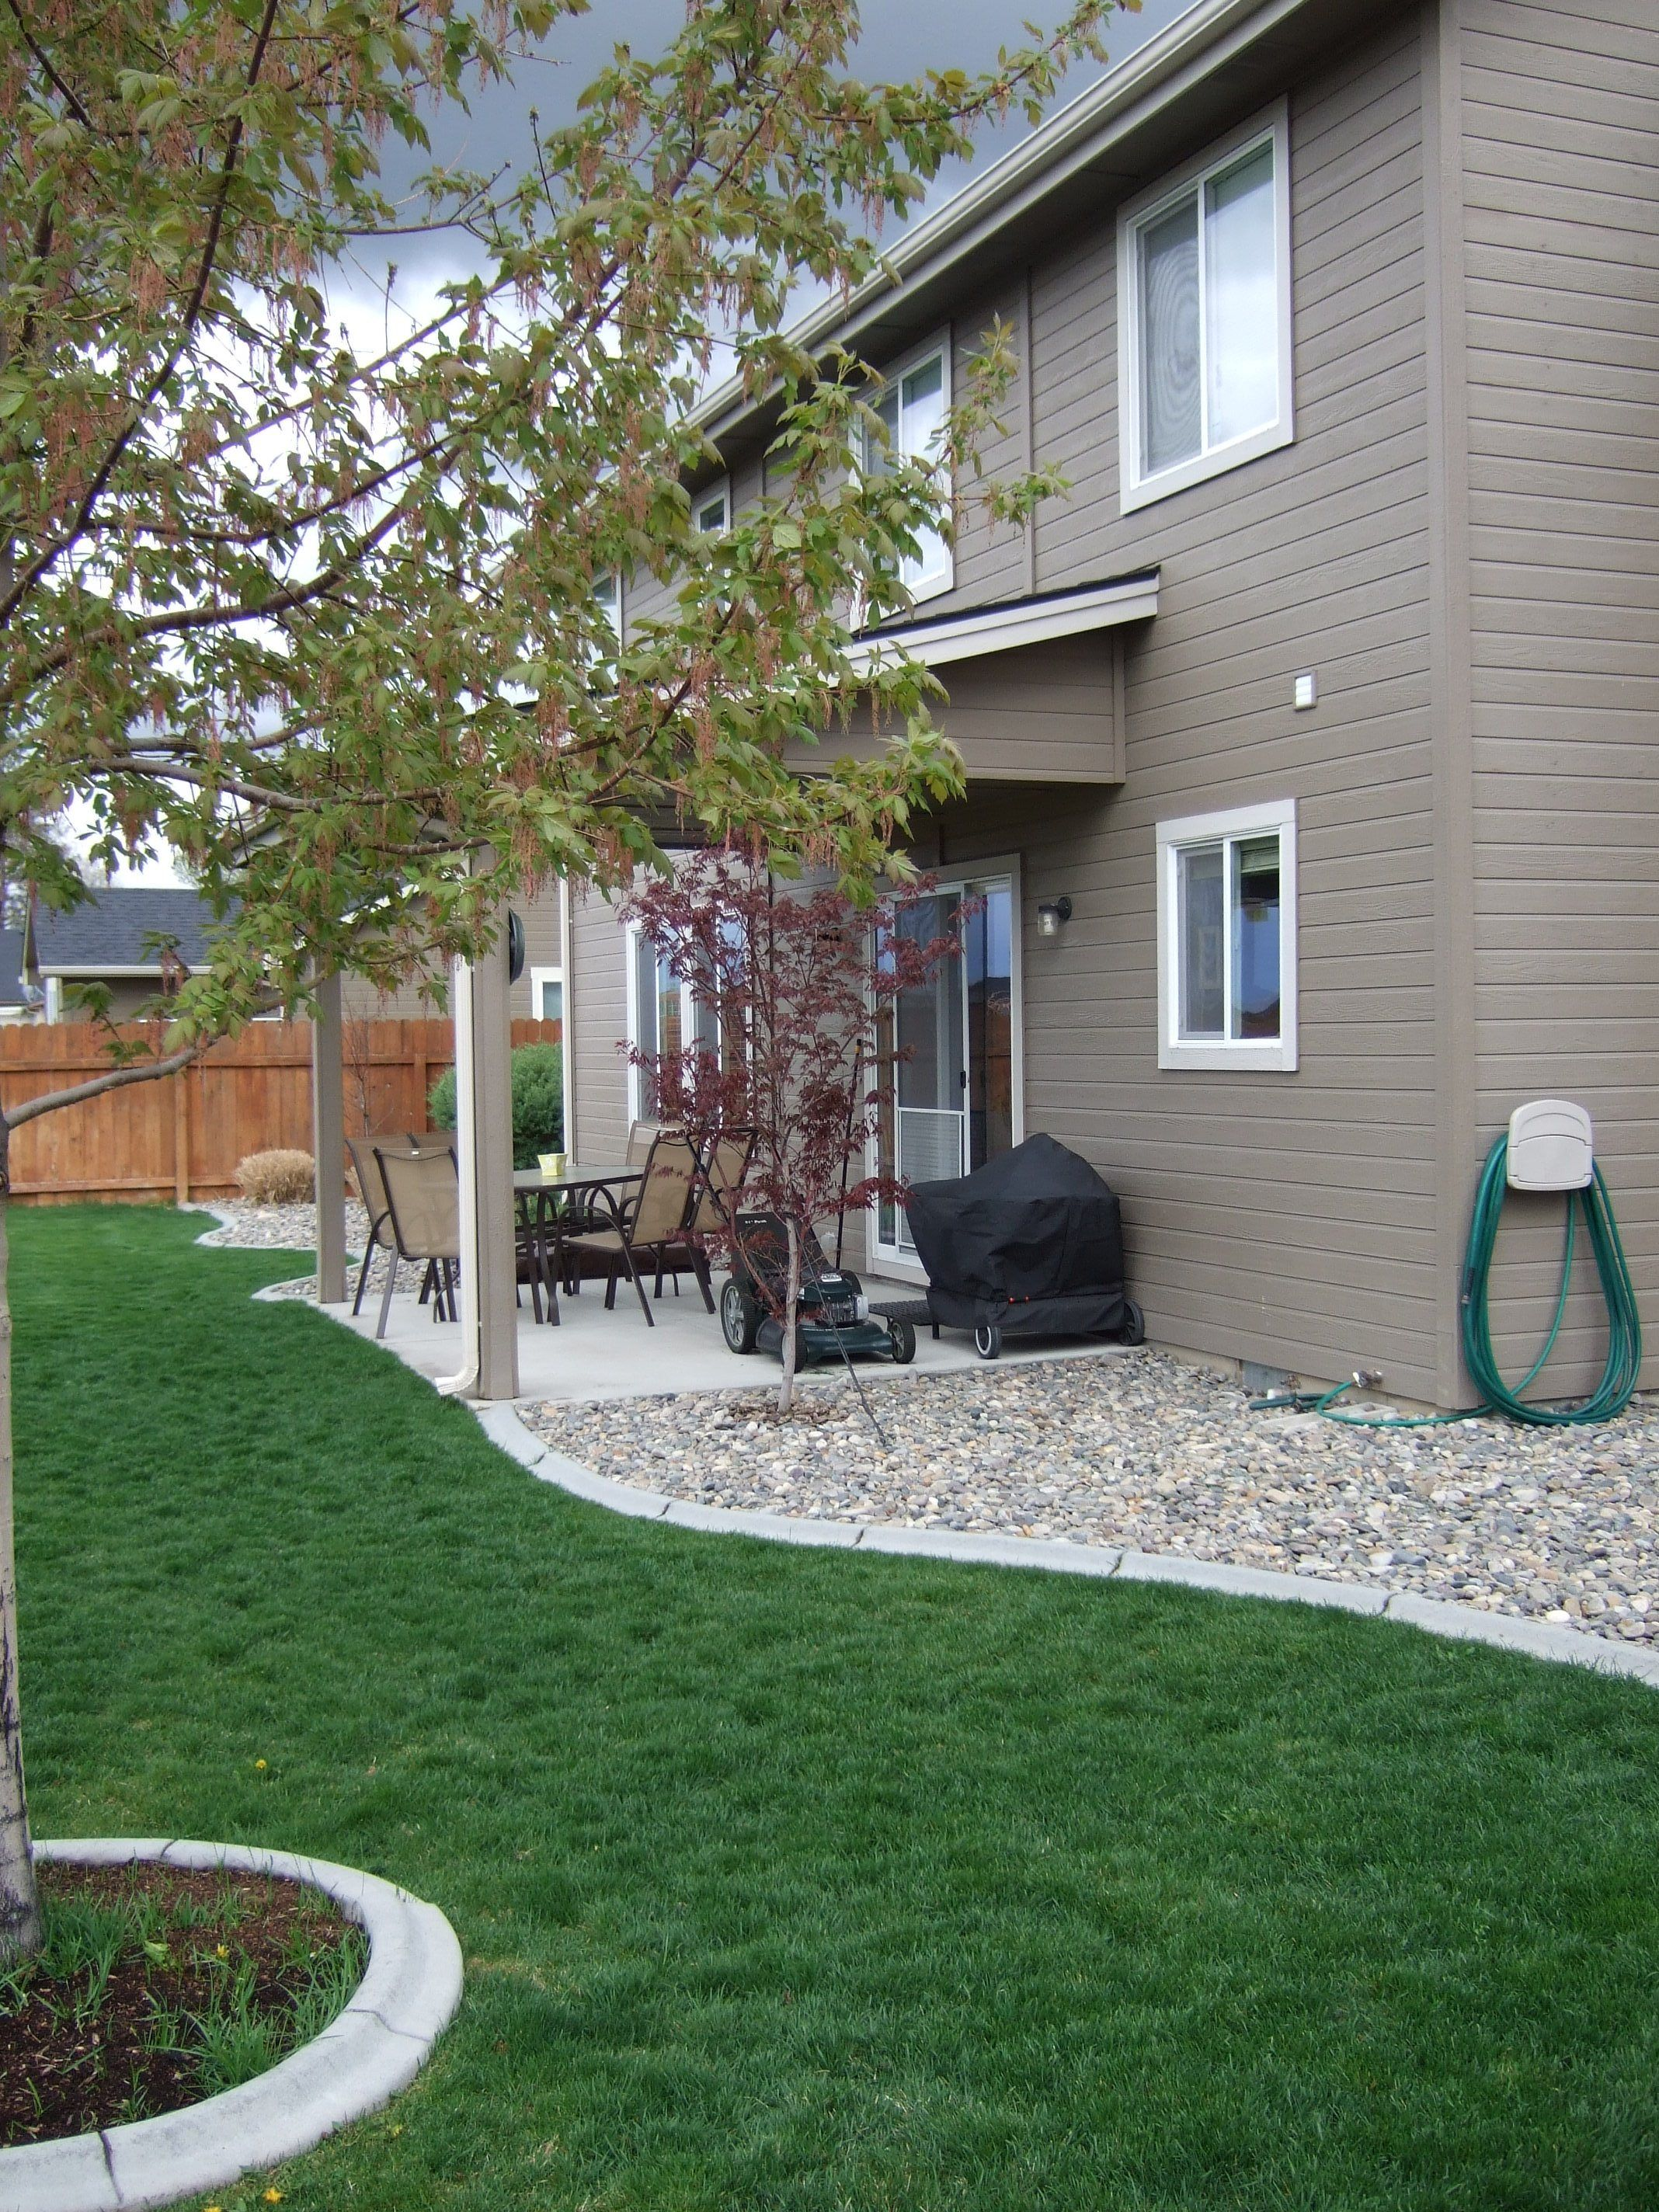 Landscaping Around Home Foundation : Landscaping ideas river rock patio around house